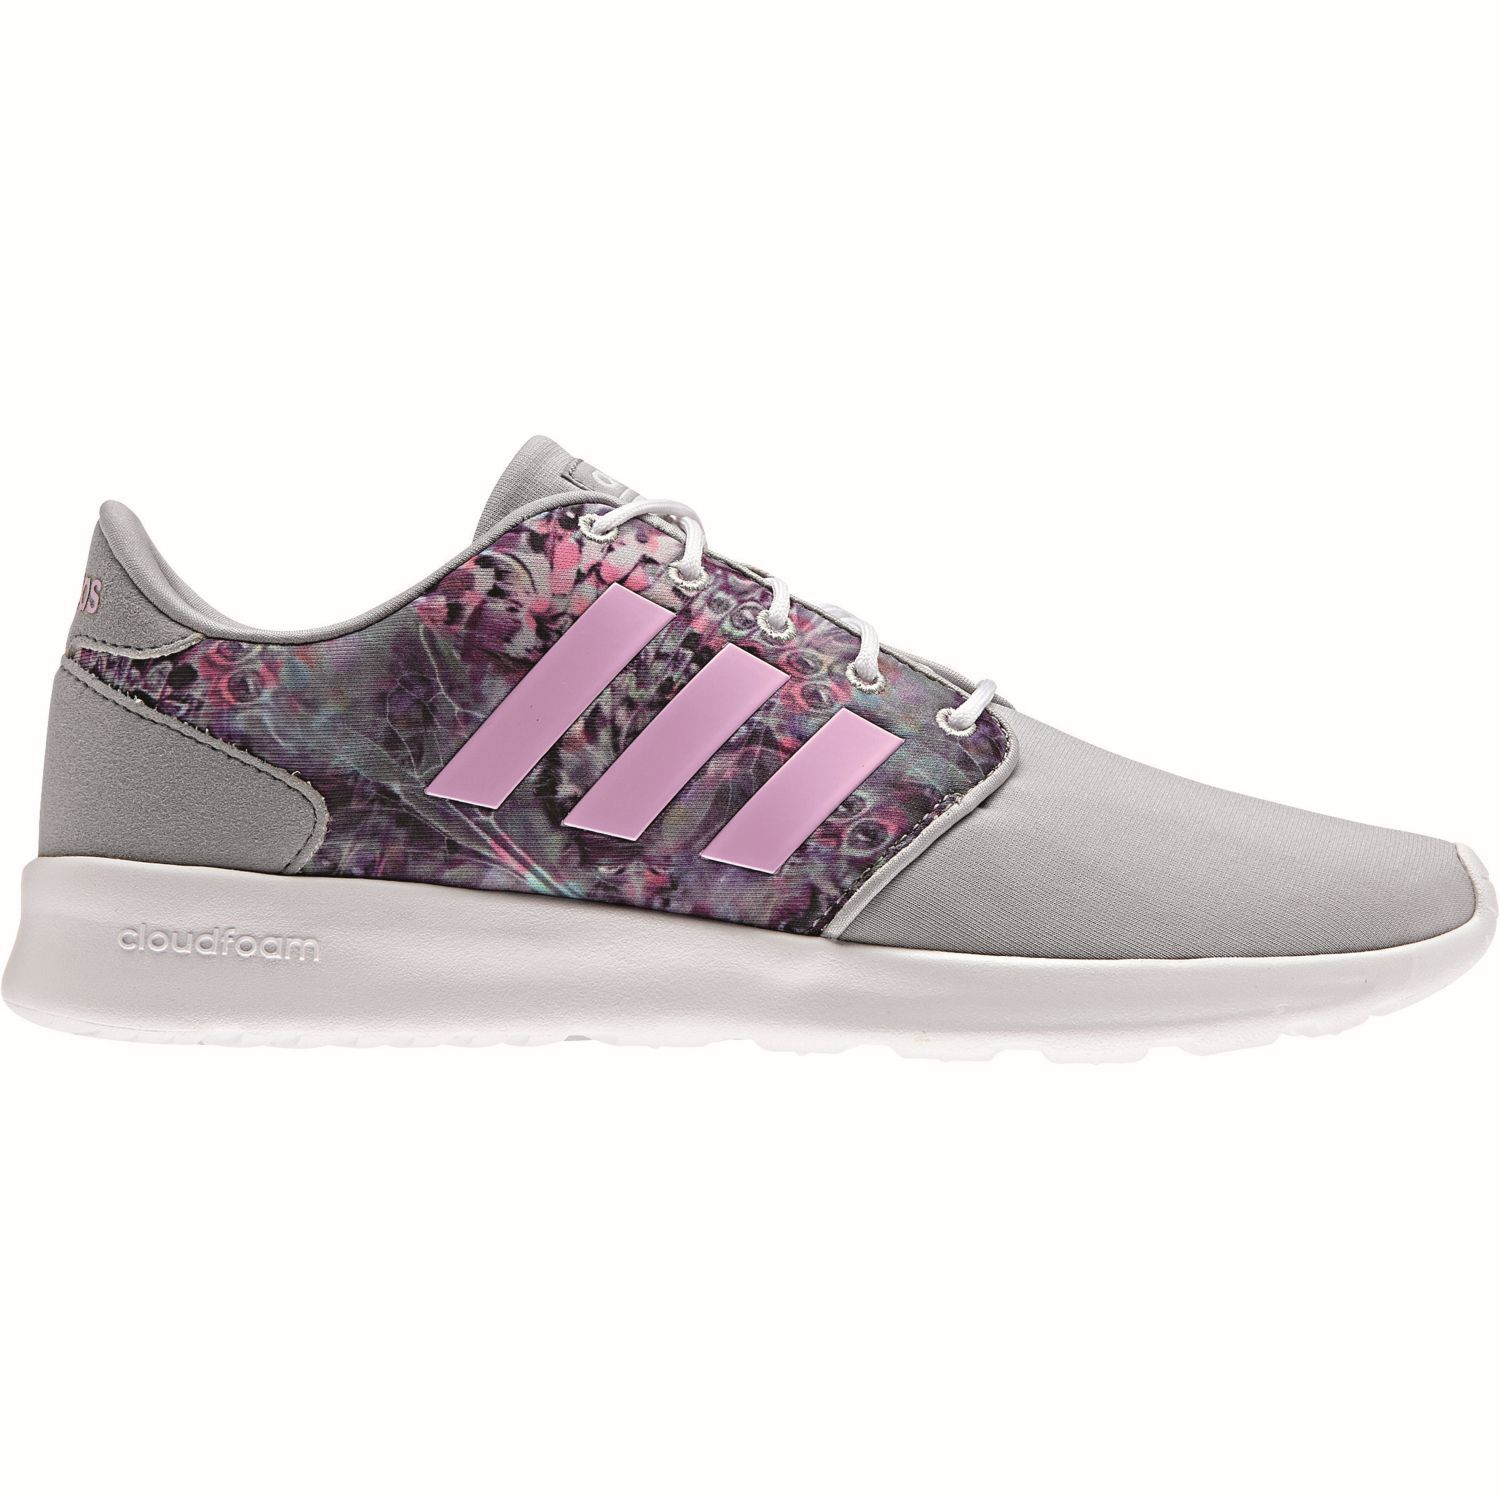 adidas neo cloudfoam qt racer women sneaker schuh aw4007. Black Bedroom Furniture Sets. Home Design Ideas